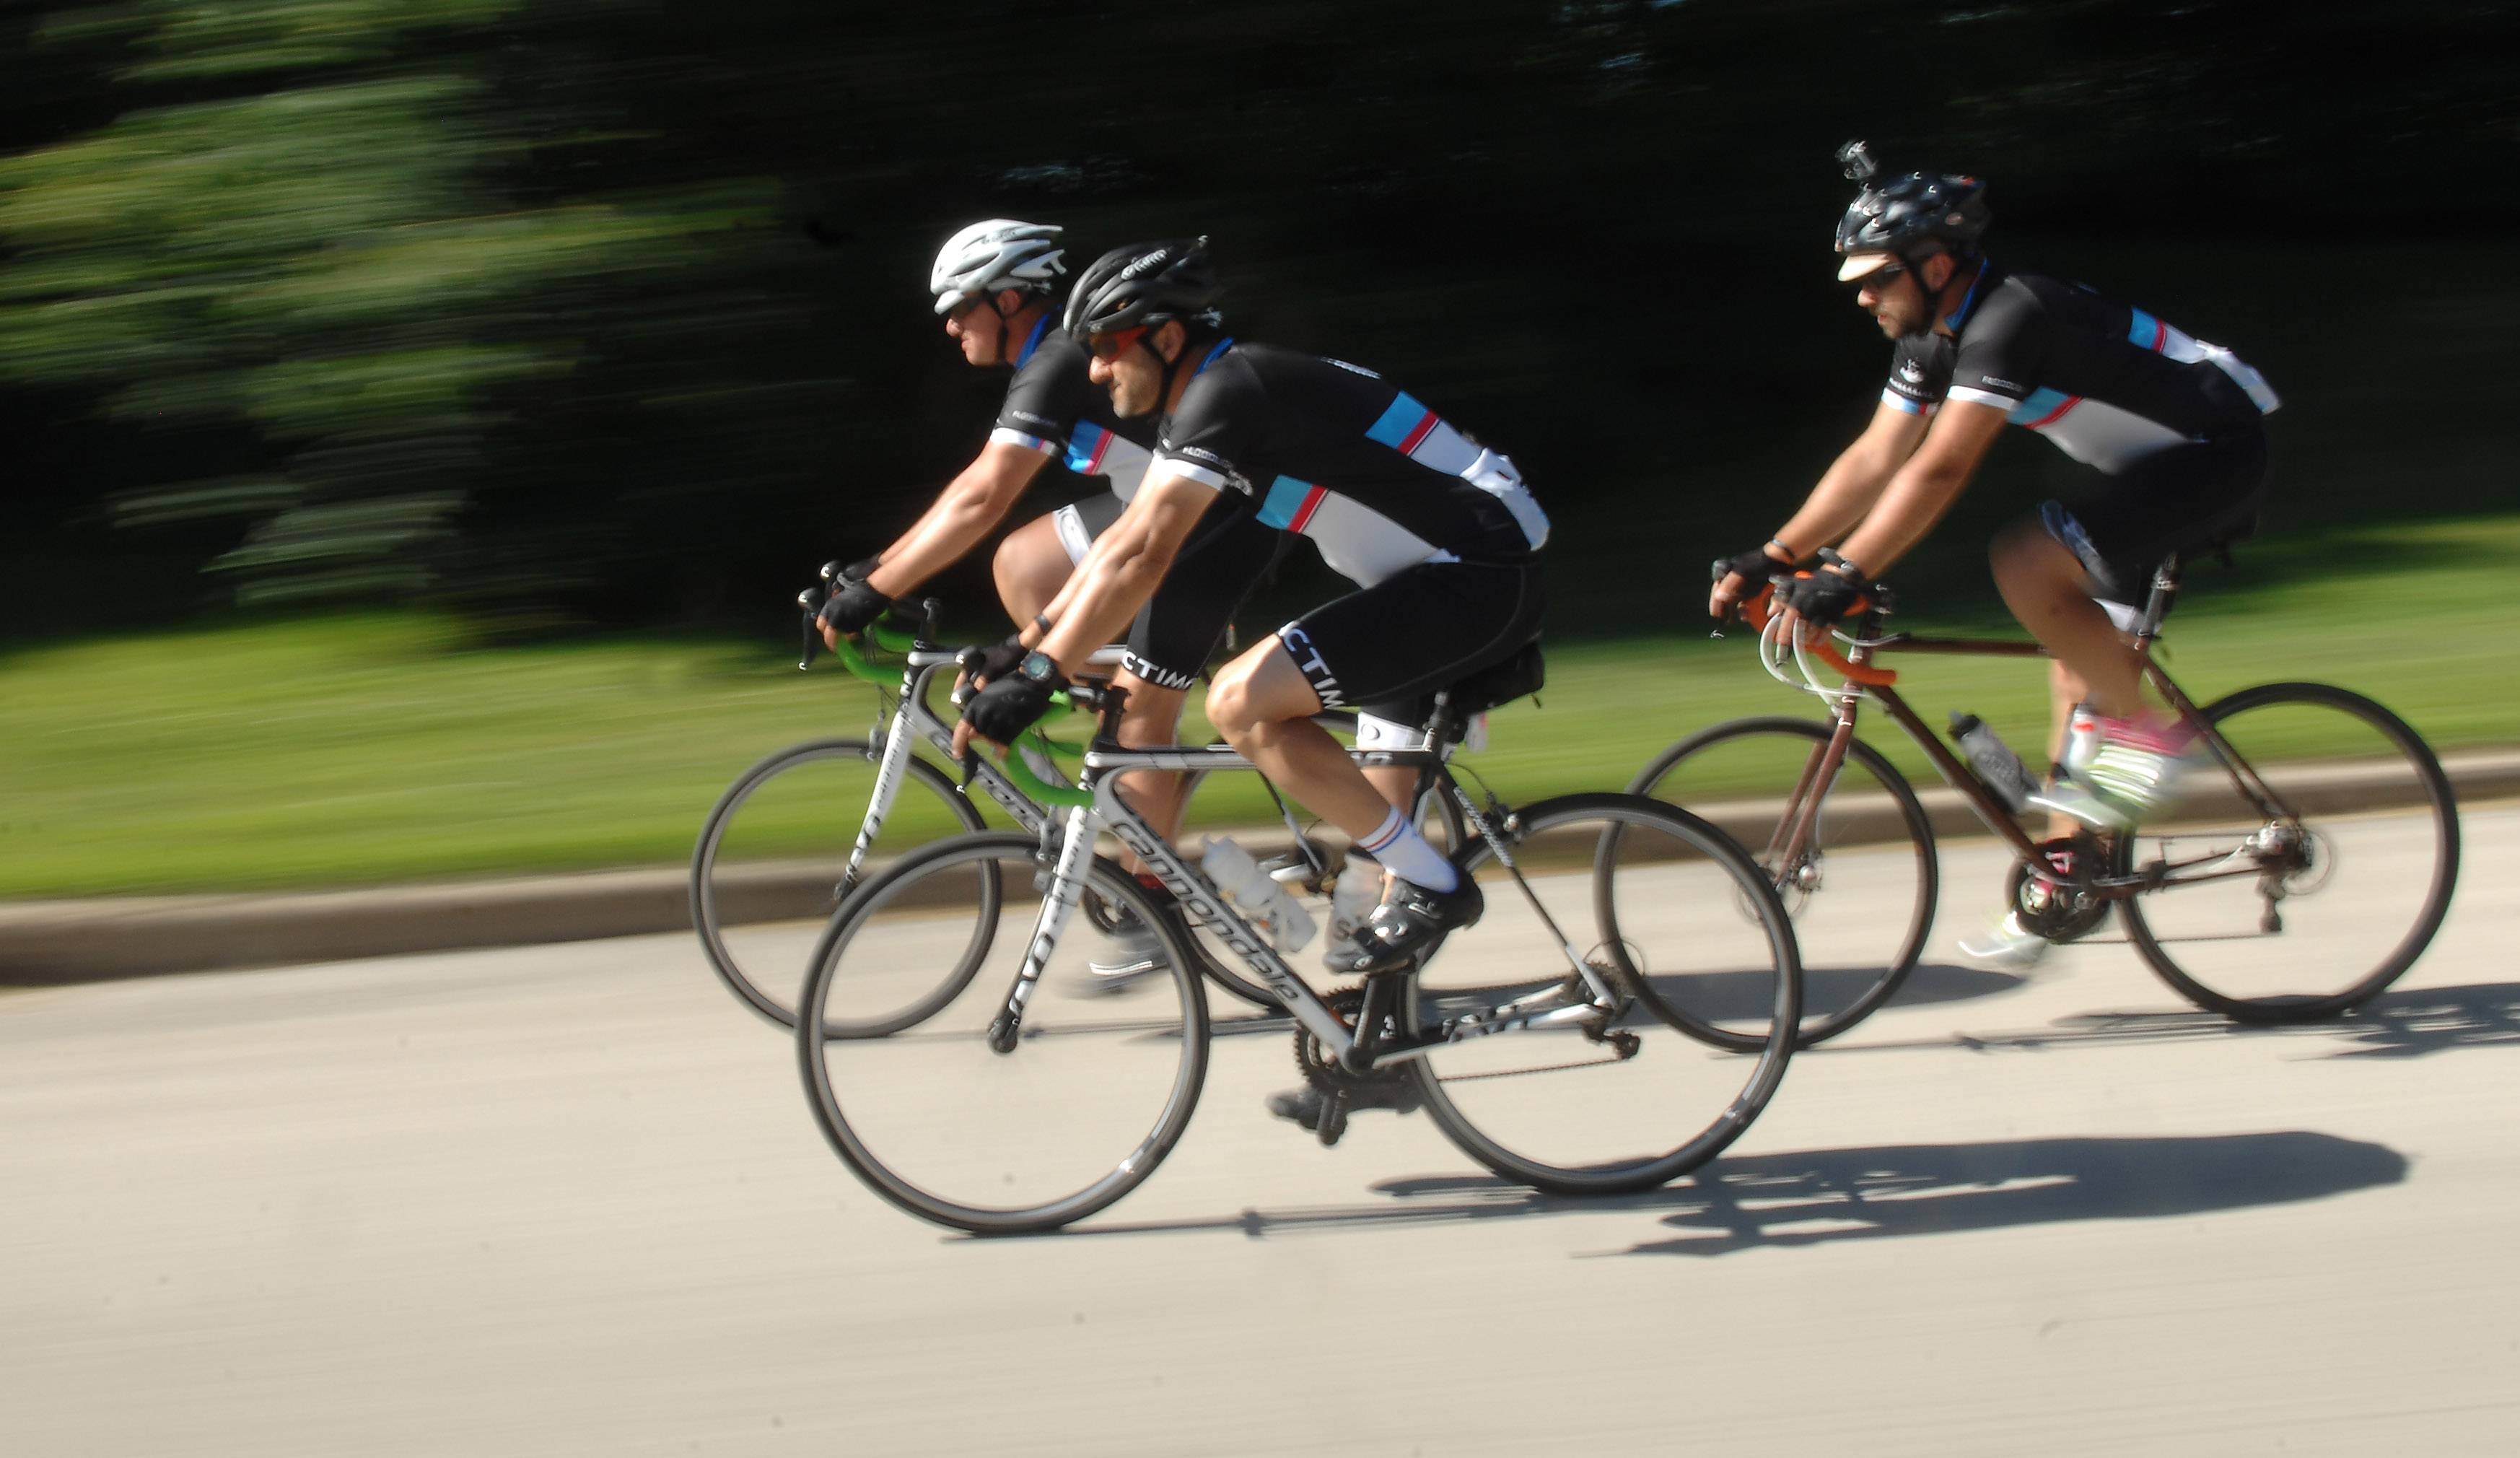 Justin Ahrens, left, Ryan Connary and Brian MacDonald recently pedal the last few miles of their 1,207-mile journey from Boston to Chicago.